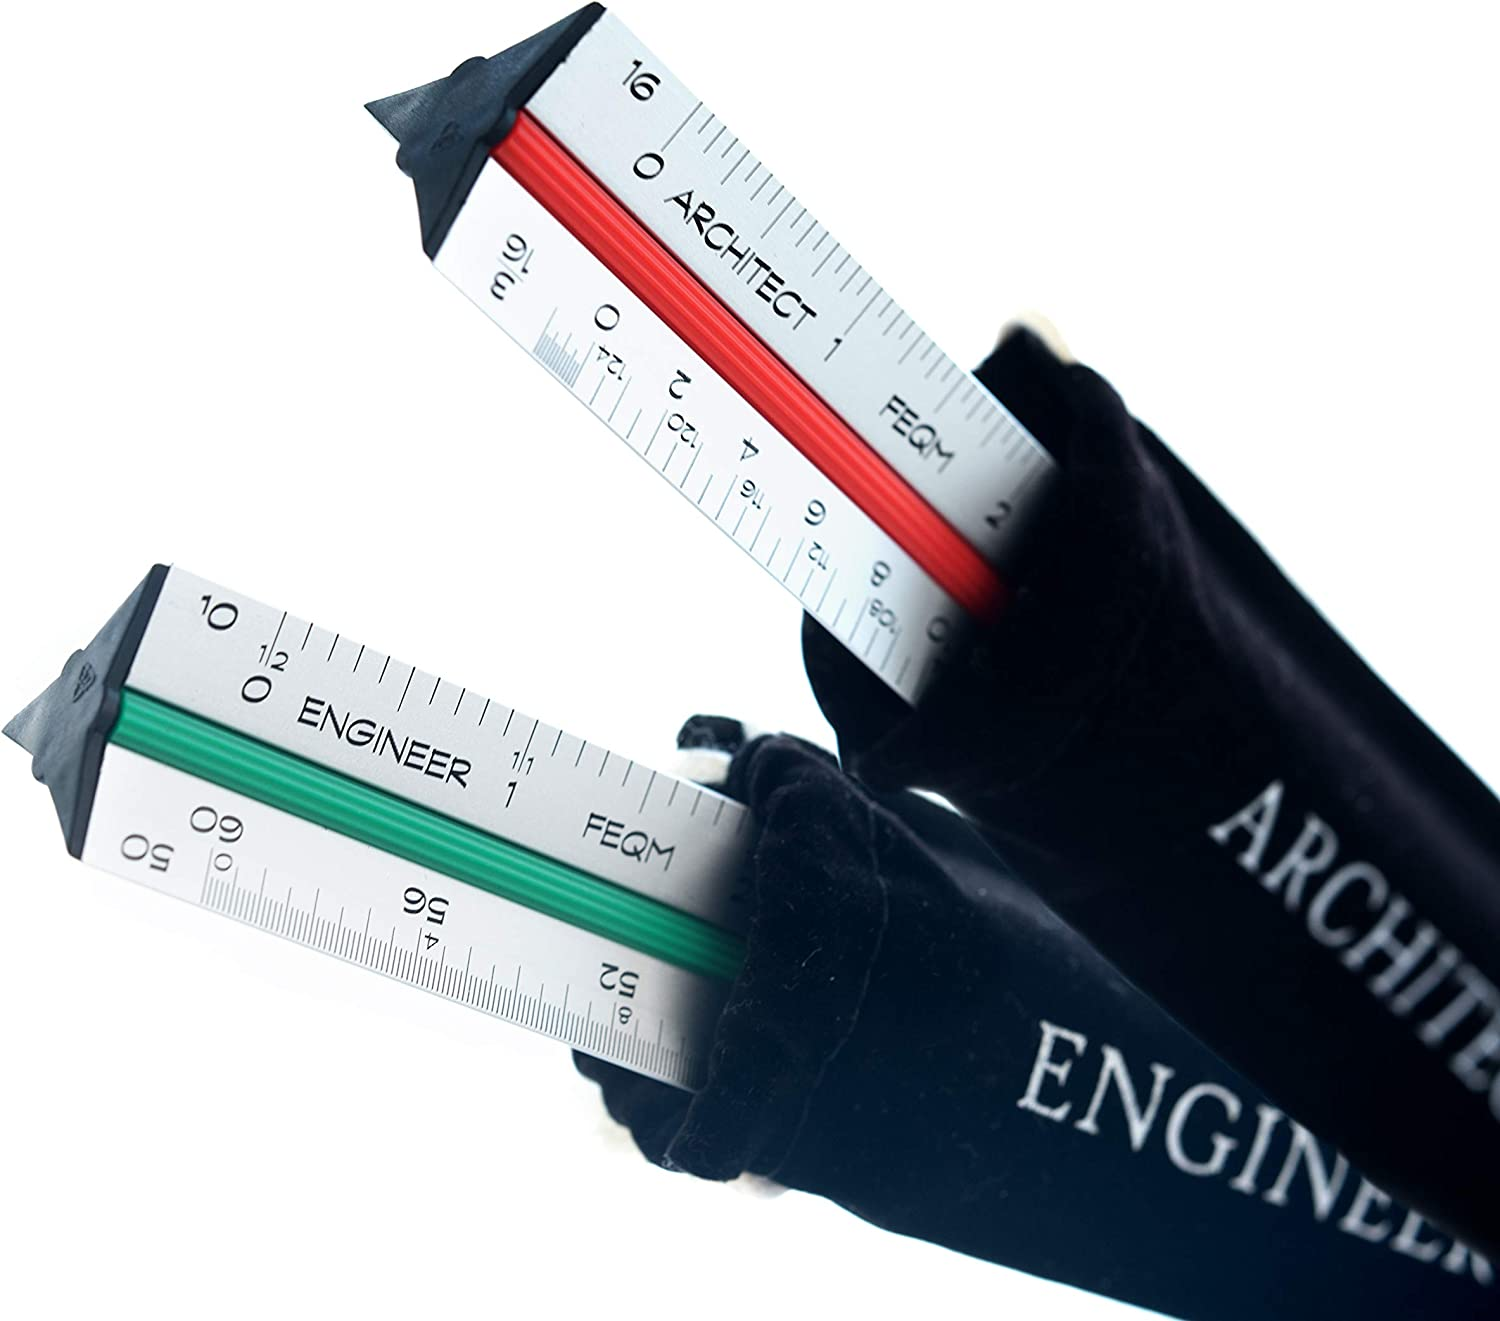 Architect (Imperial) Scale and Engineer Scale Set - Two UV Printed 12 Inch Hollow Aluminum Triangular Scale Rulers with Protective Sleeves